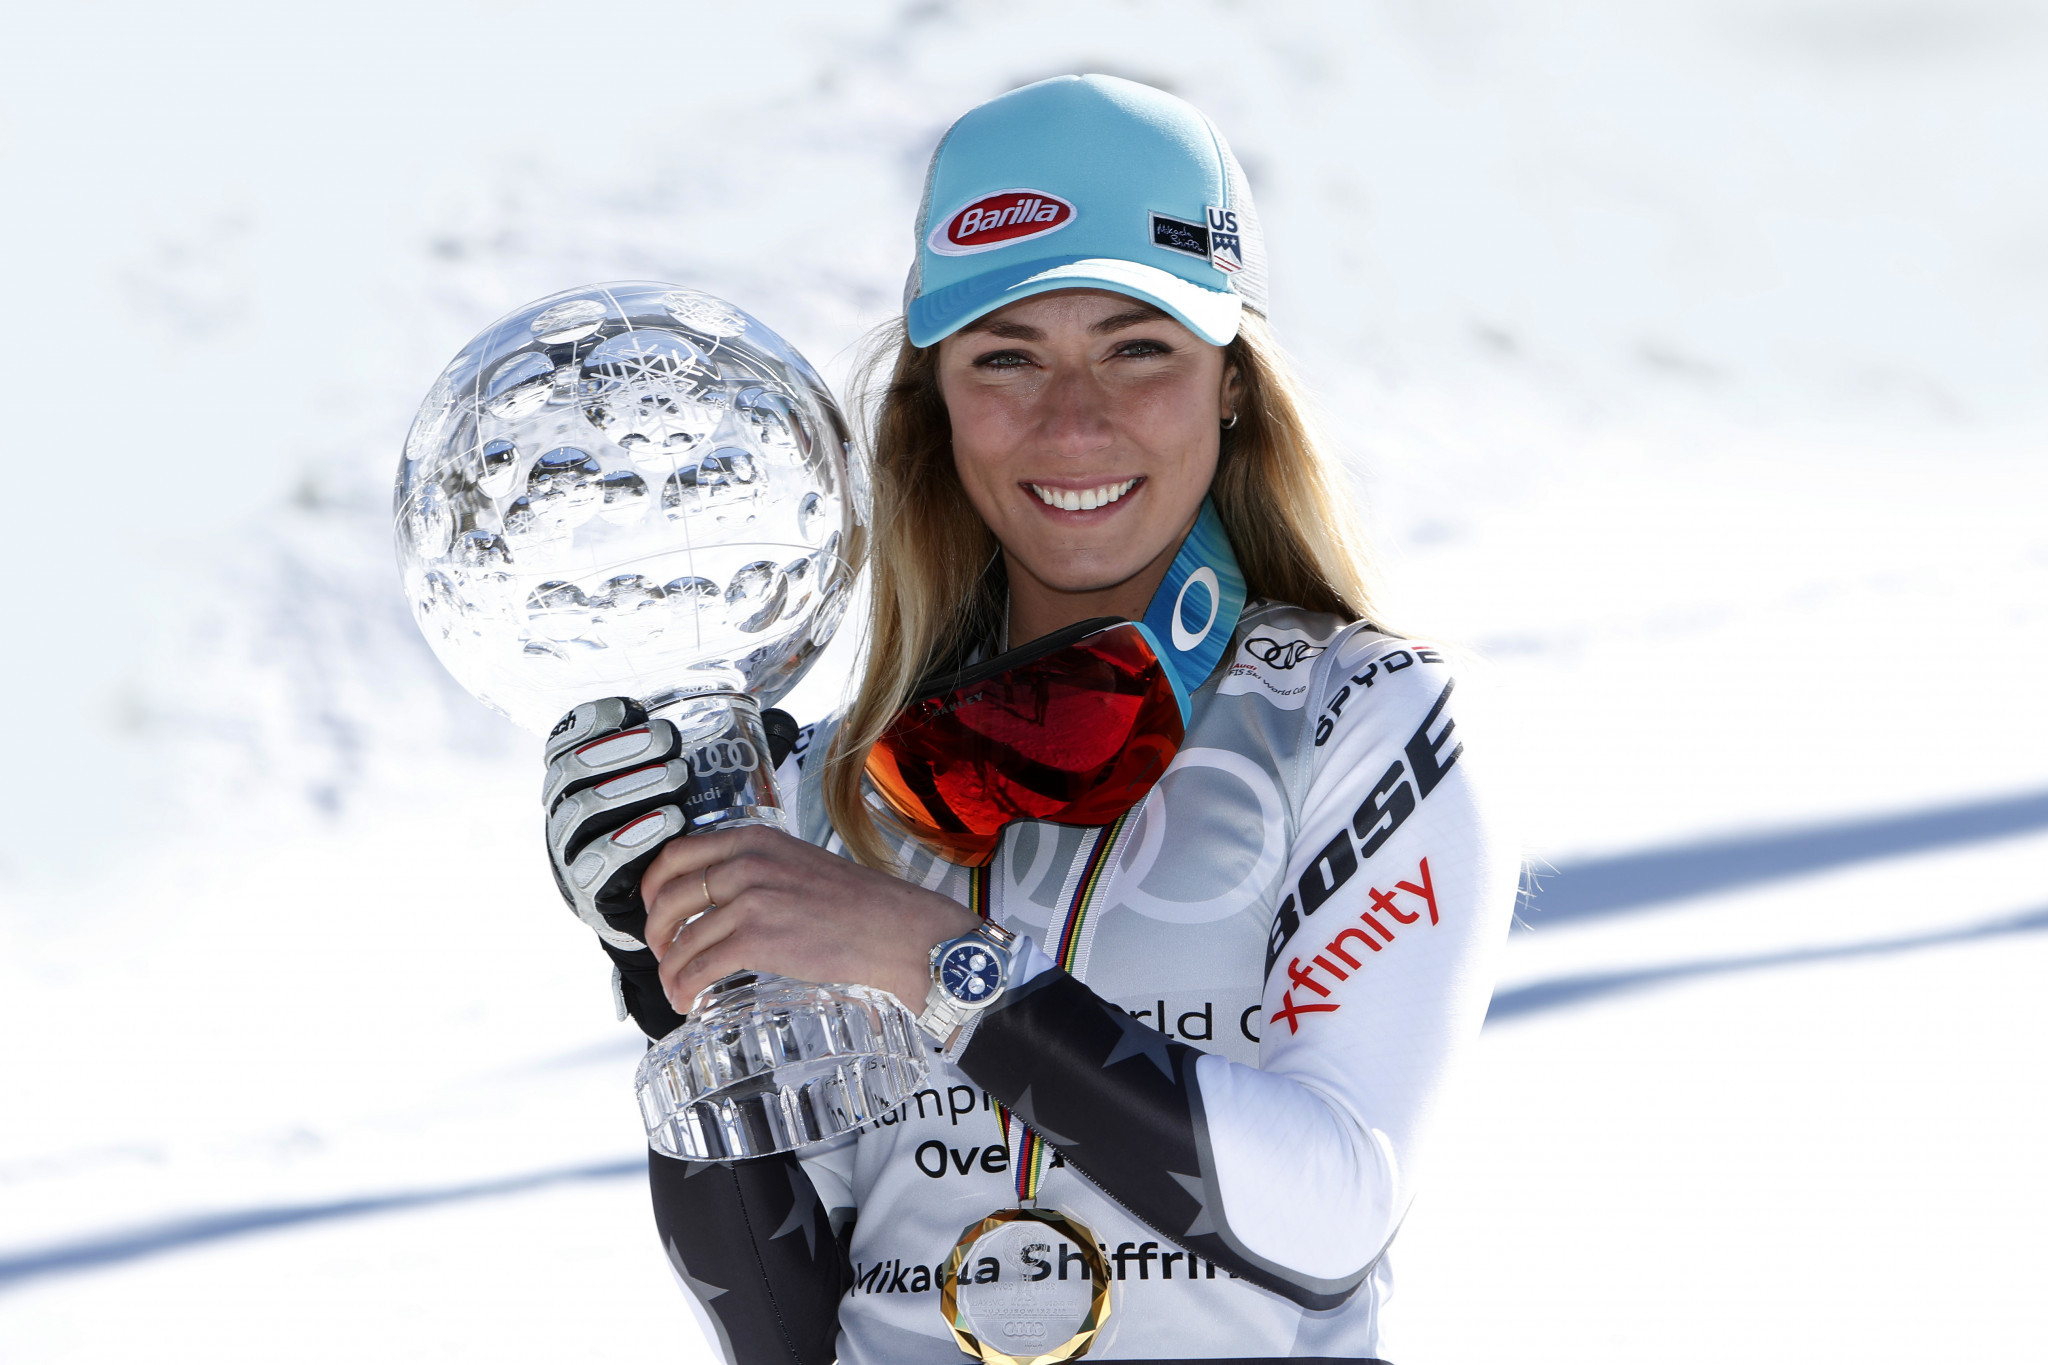 Shiffrin becomes first skier to exceed CHF 1 million prize money mark in one season